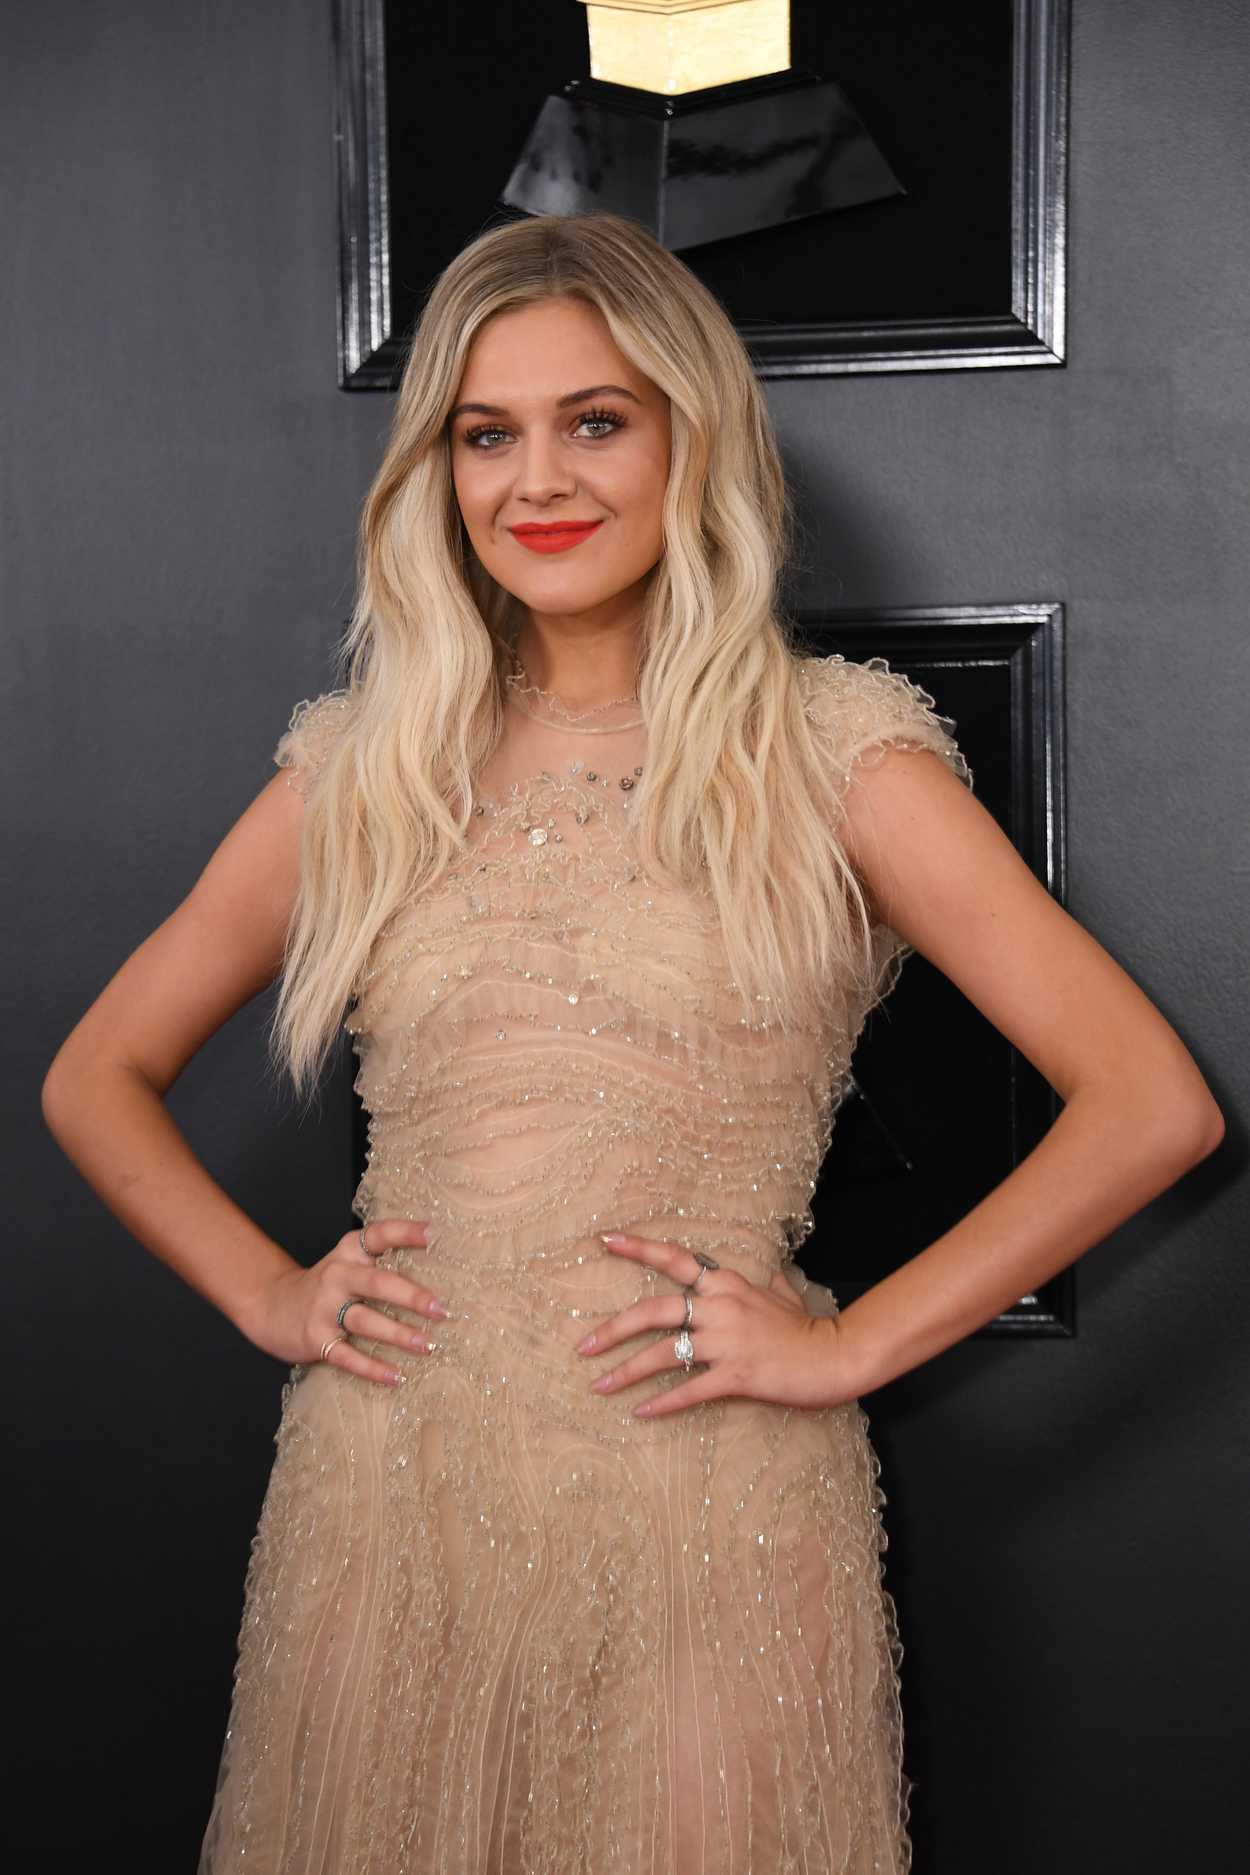 Kelsea Ballerini Attends the 61st Annual Grammy Awards ...